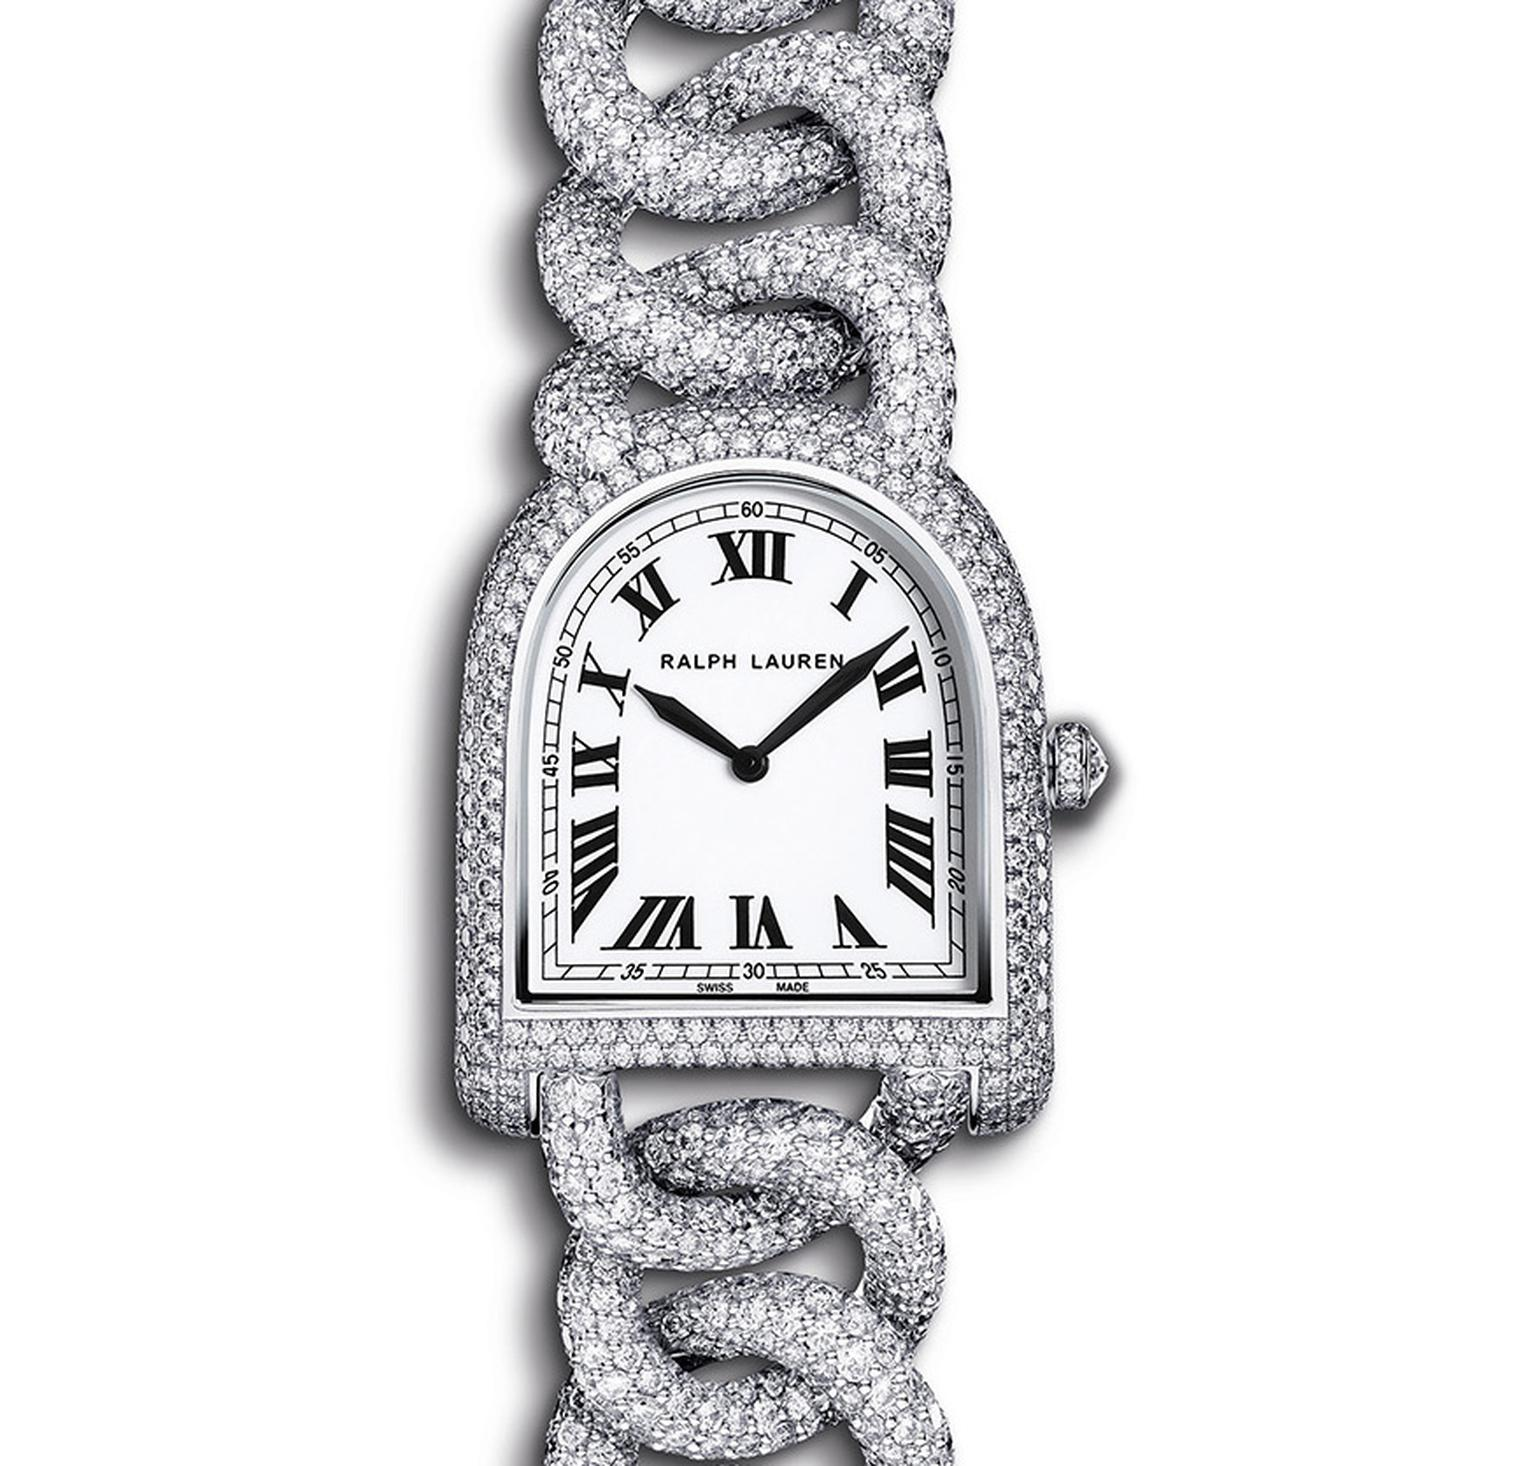 Ralph Lauren Petite Link watch in white gold, fully pavéd with diamonds